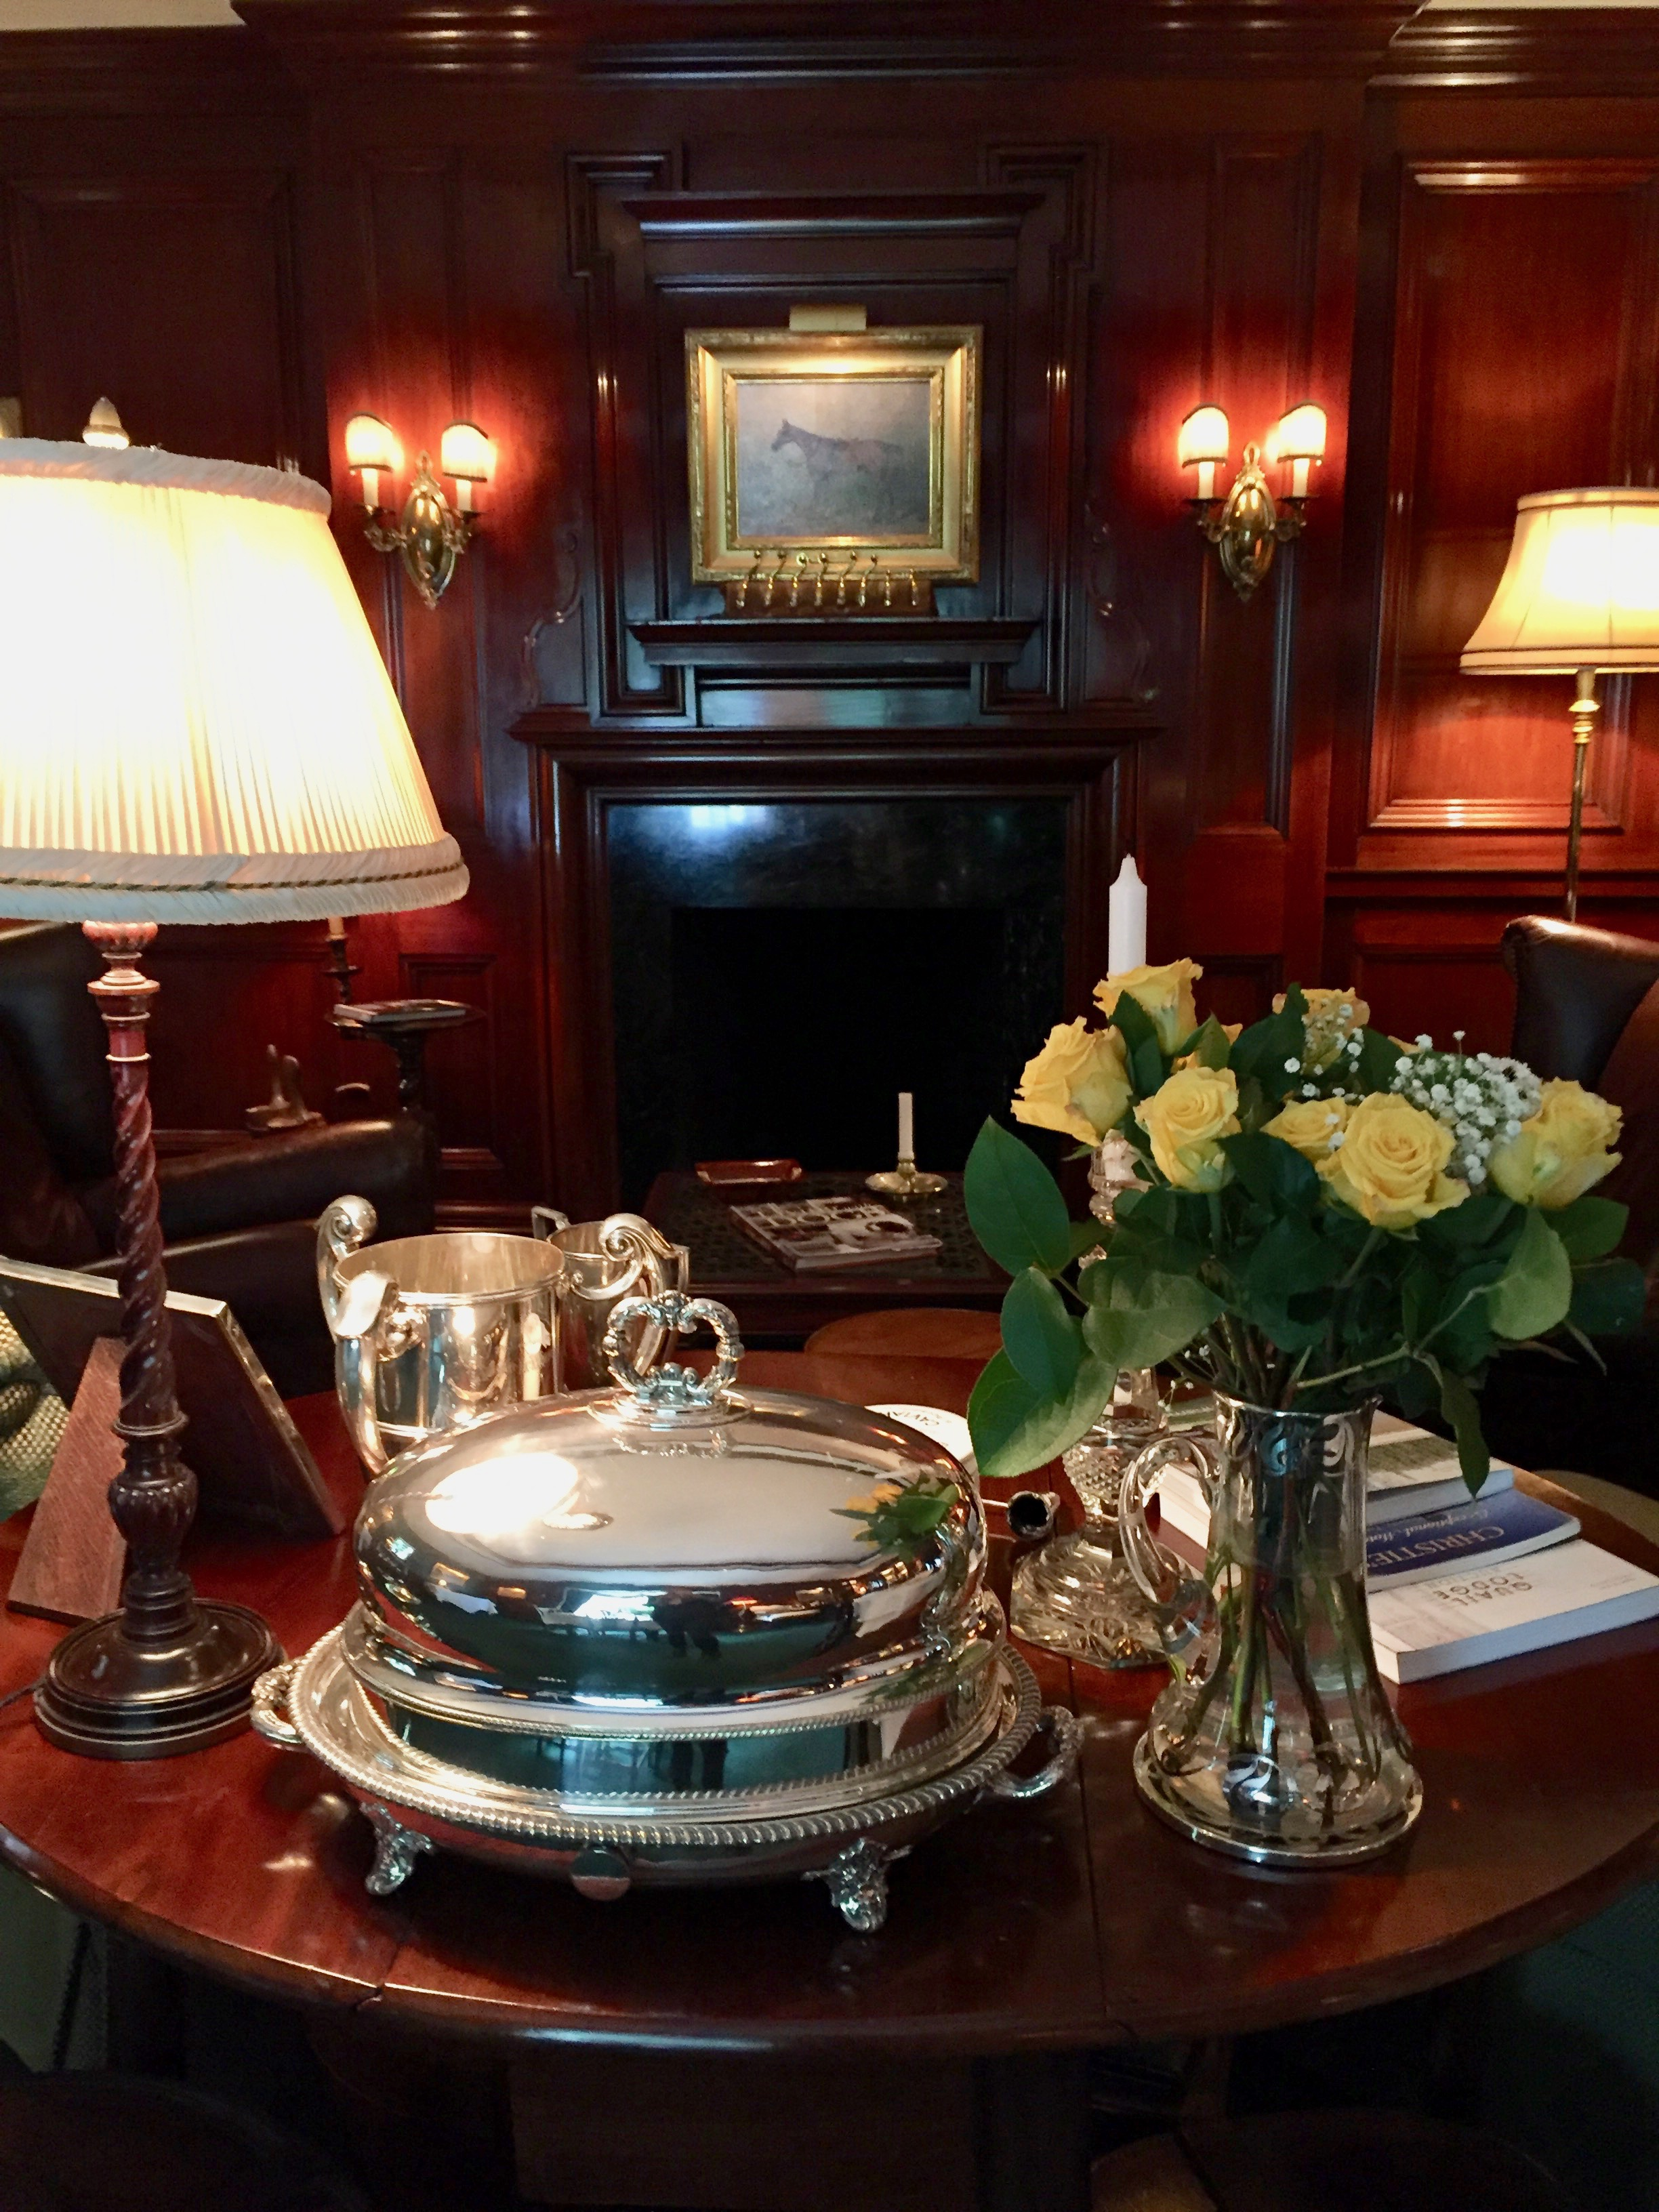 Equestrian theme Charlotte Inn with New England Fine Living